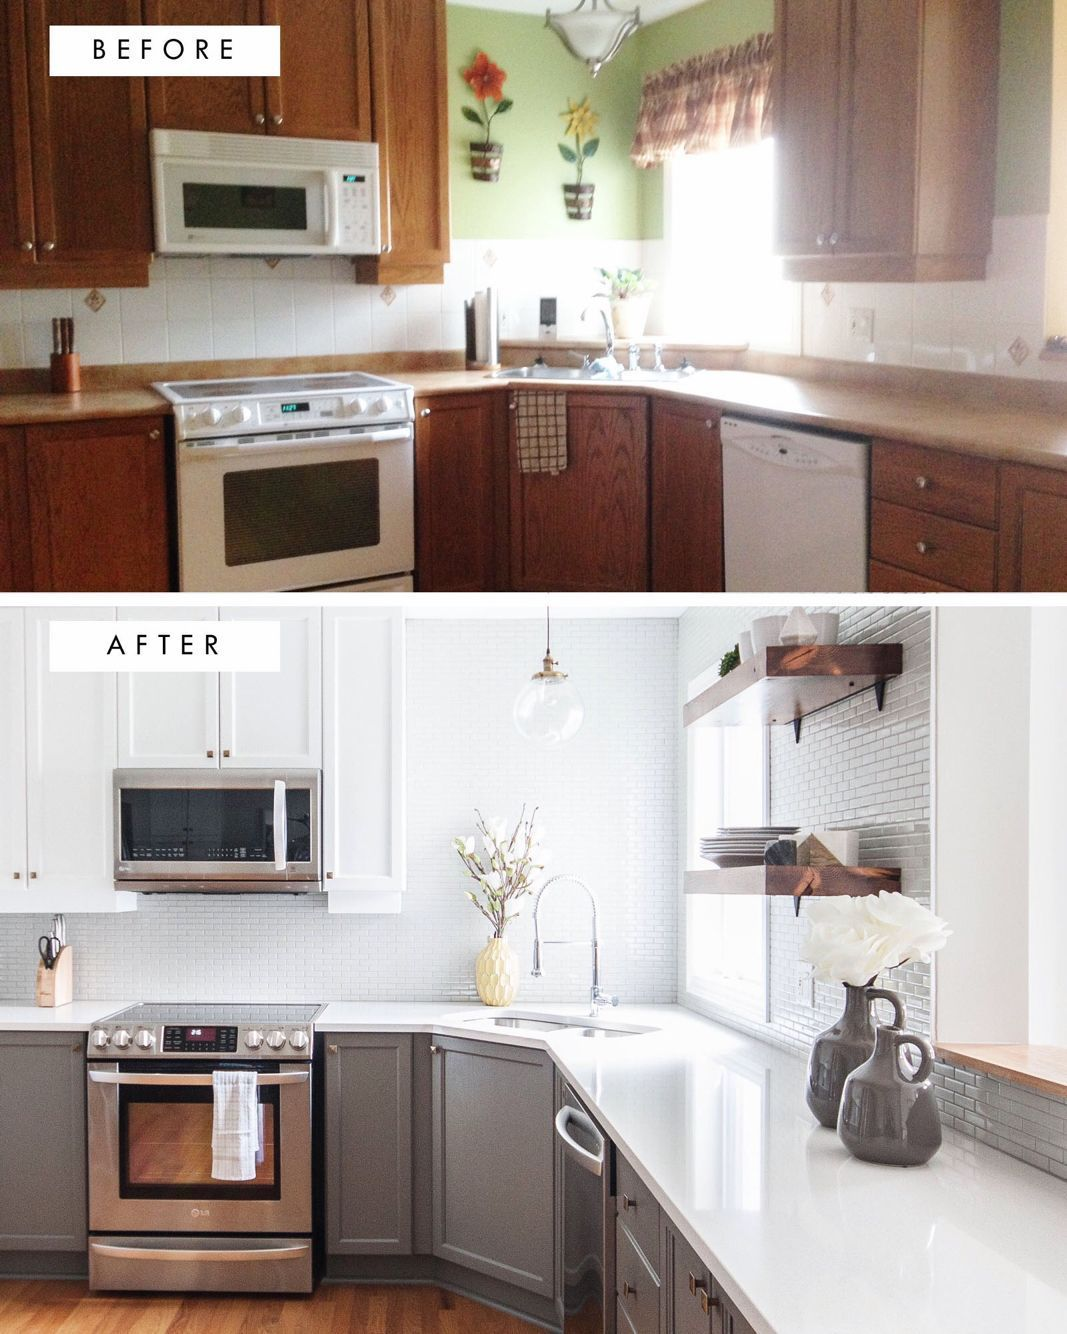 9 Simple And Ridiculous Tips And Tricks Kitchen Remodel Cost